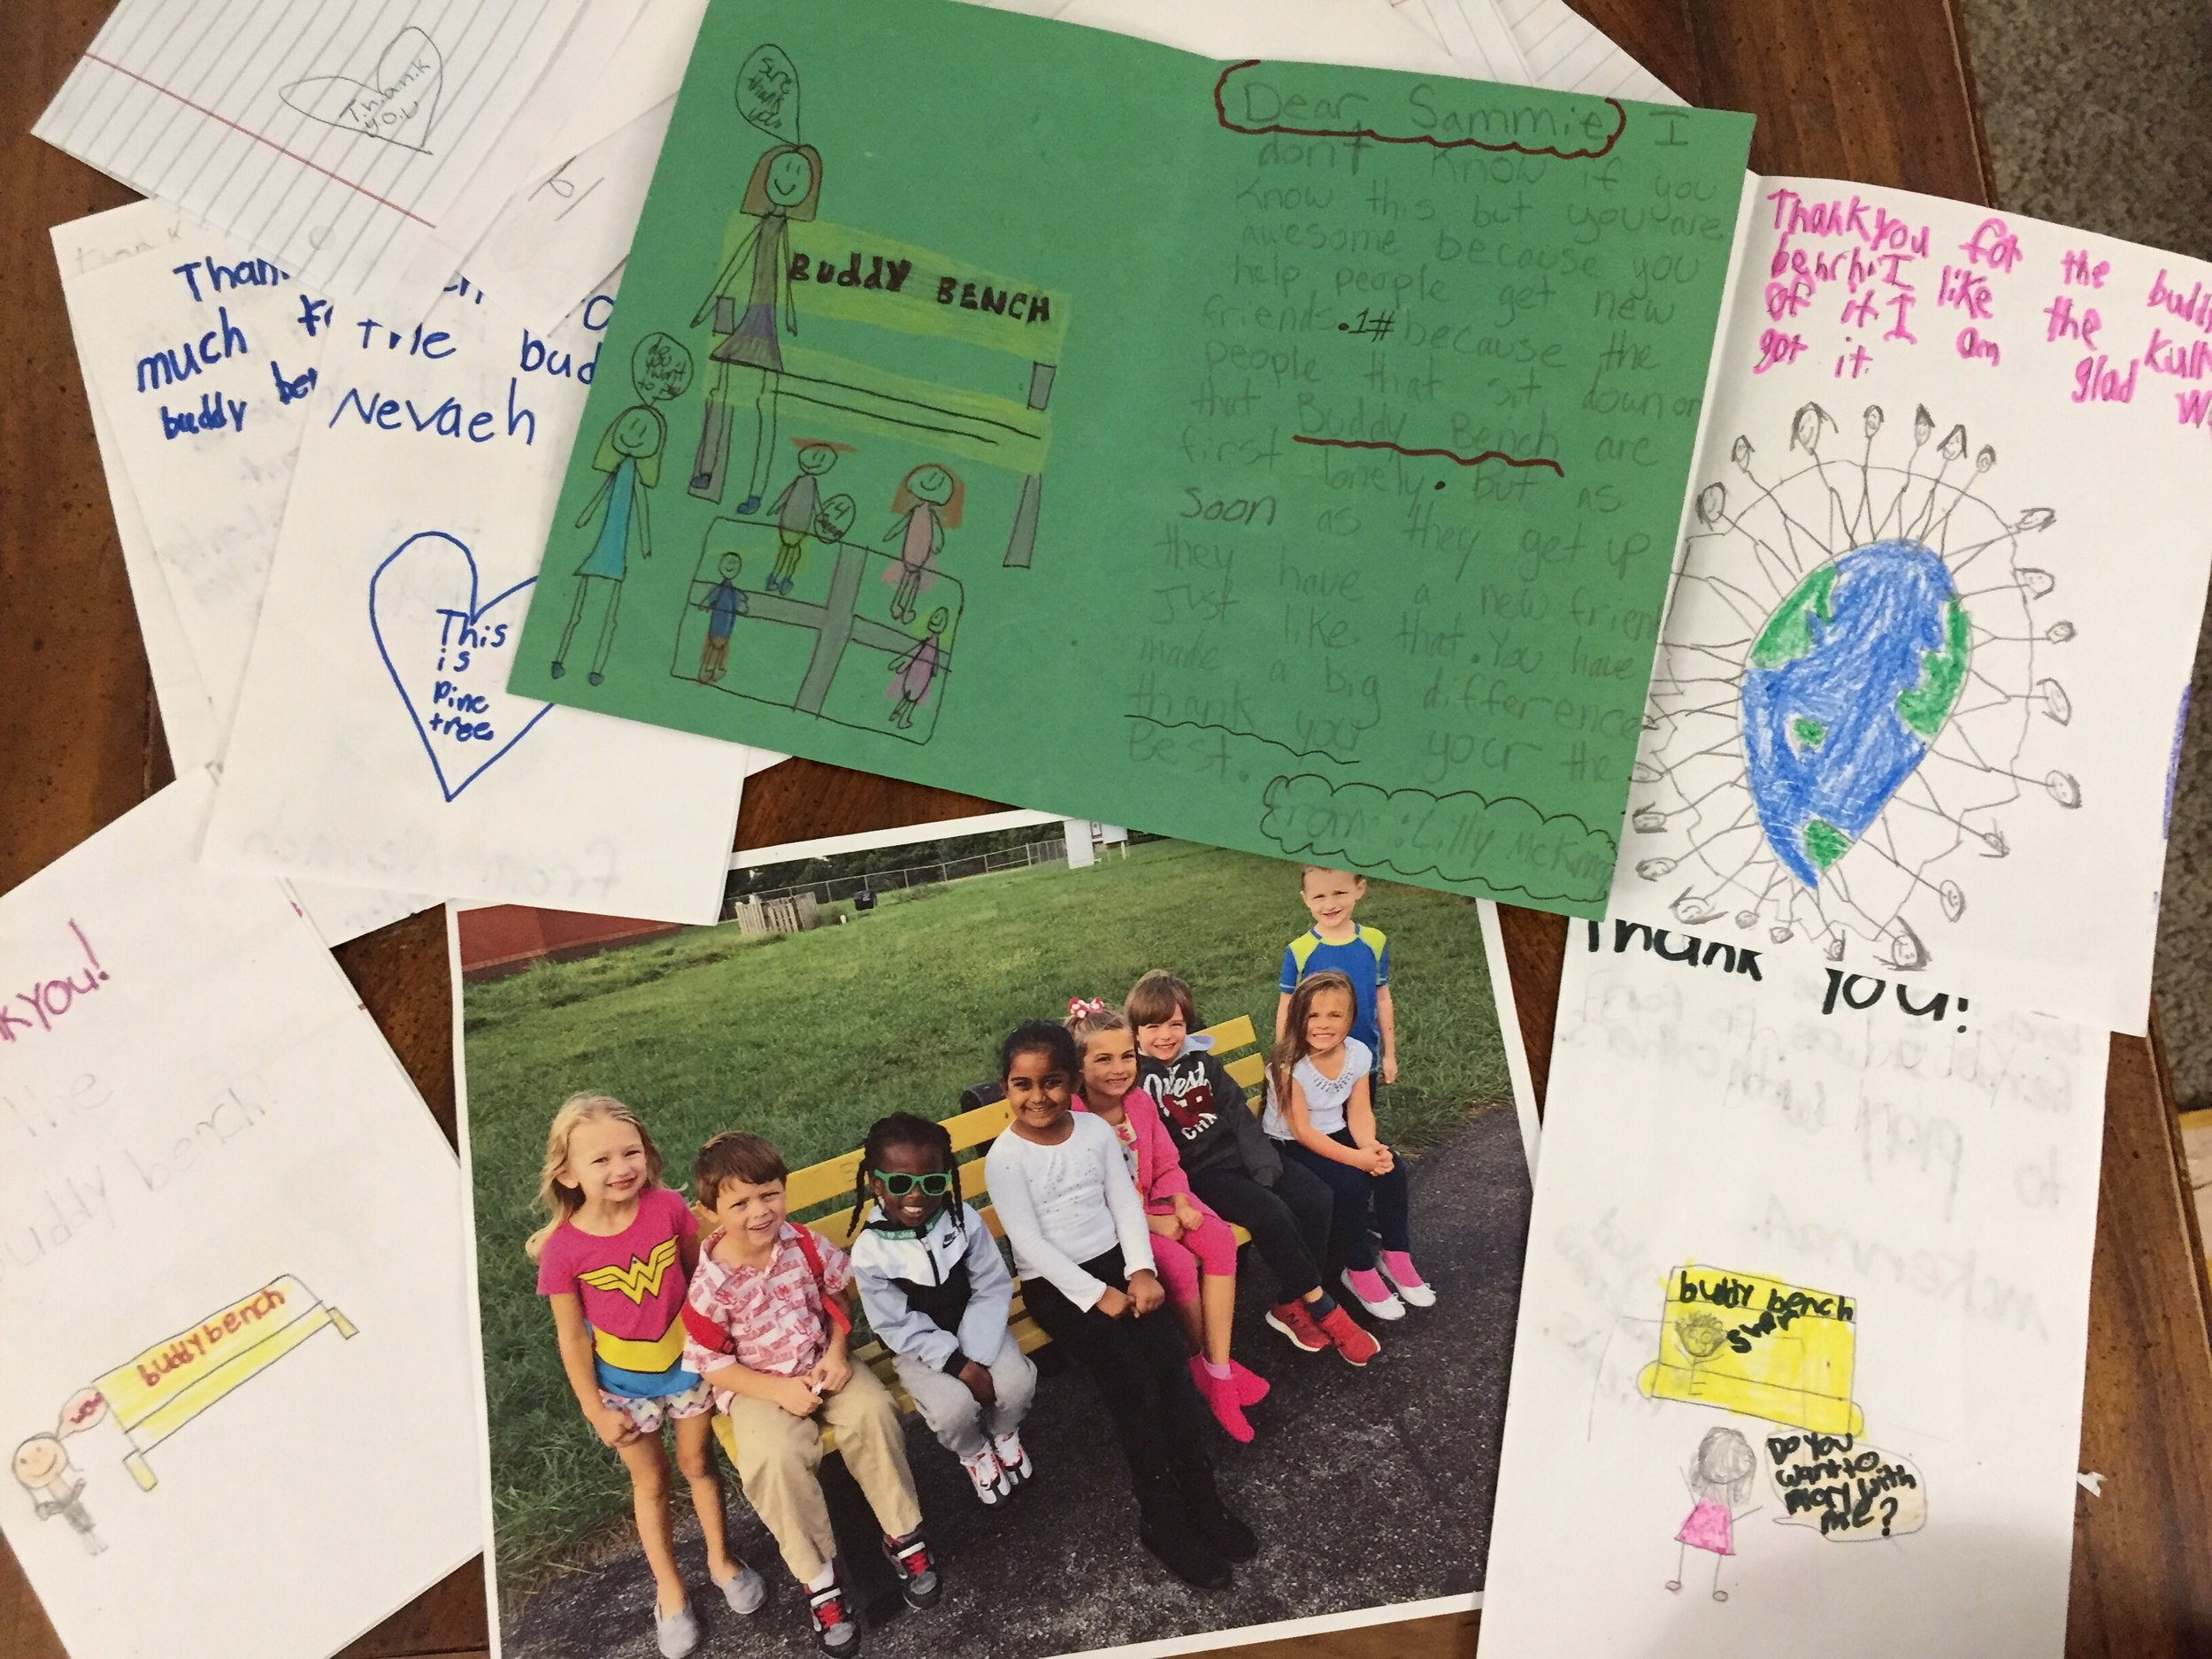 These are some of my letters from some of the 75 schools I was able to give buddy benches to in September! I love that the Buddy Benches are working!